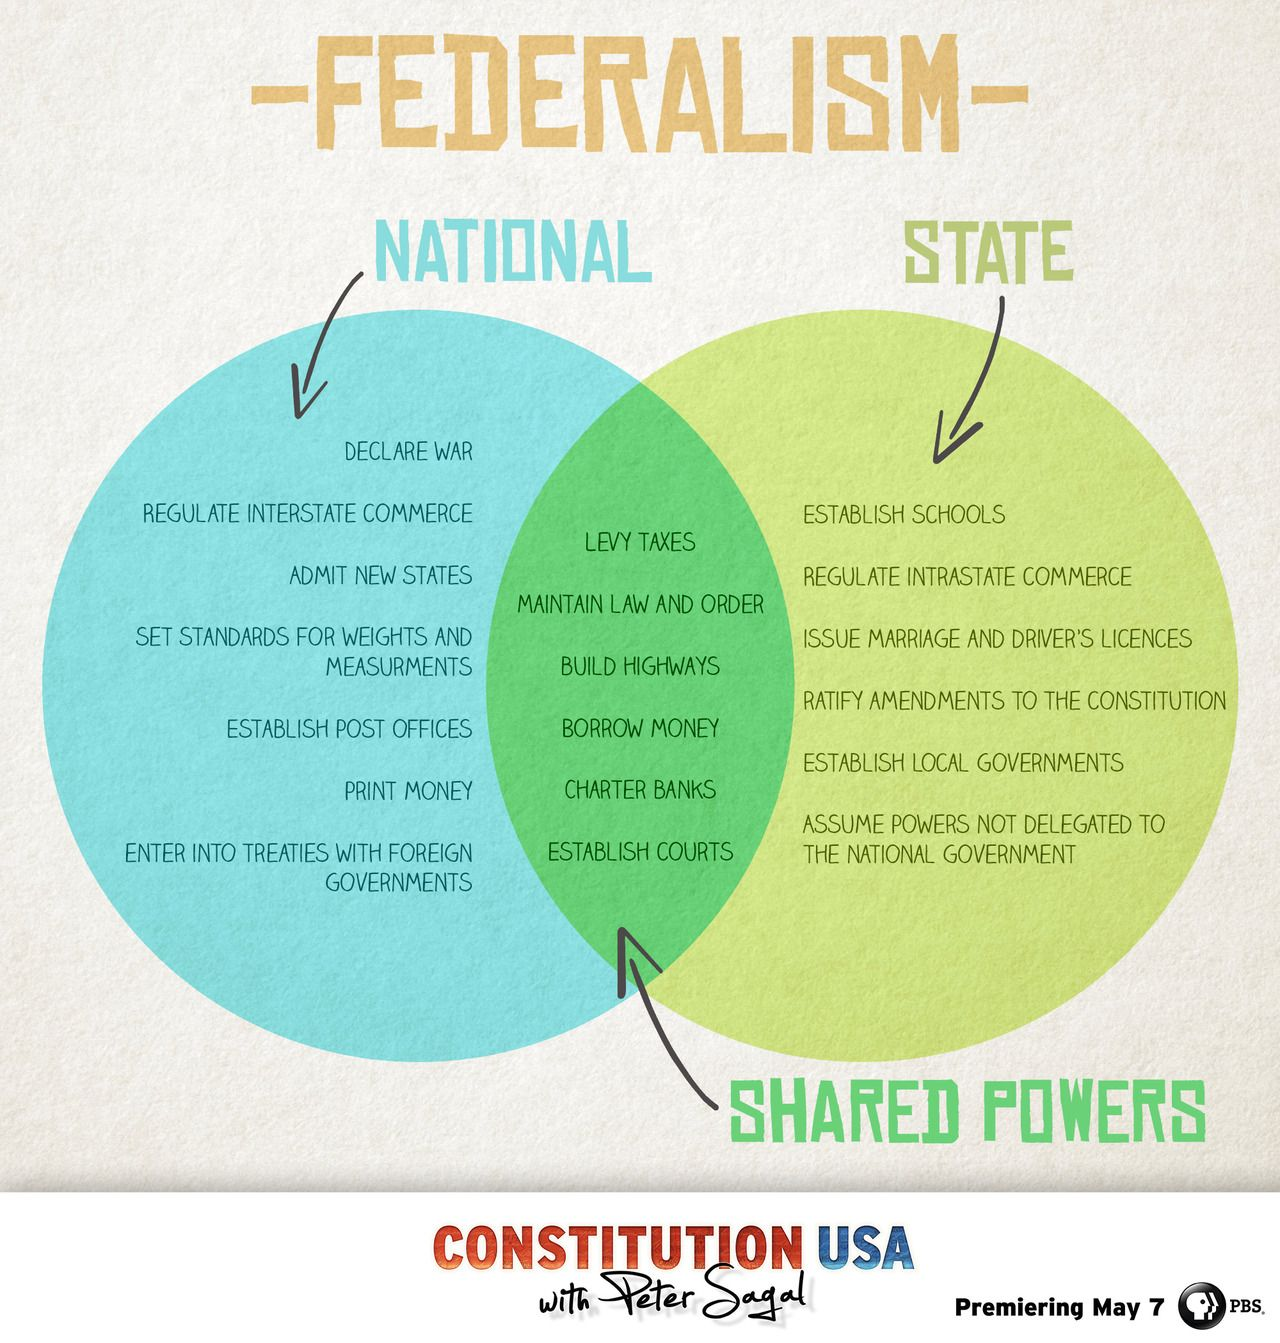 federalism the relationship between state governments and the federalism the relationship between state governments and the federal government this split gives some